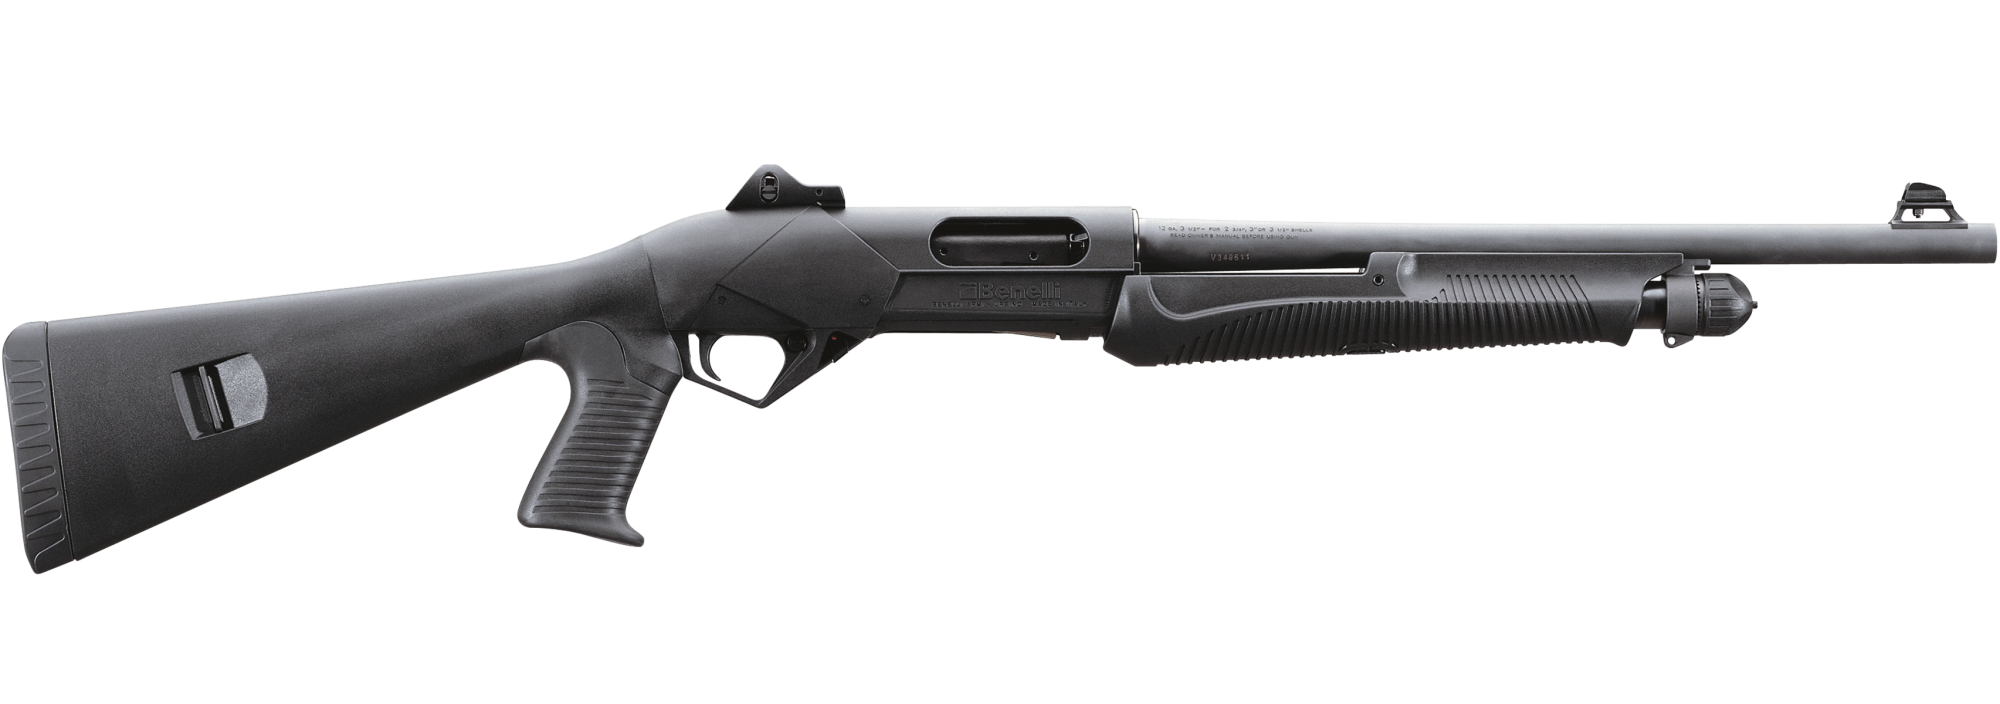 Benelli Super Nova Tactical Pump 12g Pistol Grip Shotgun ...